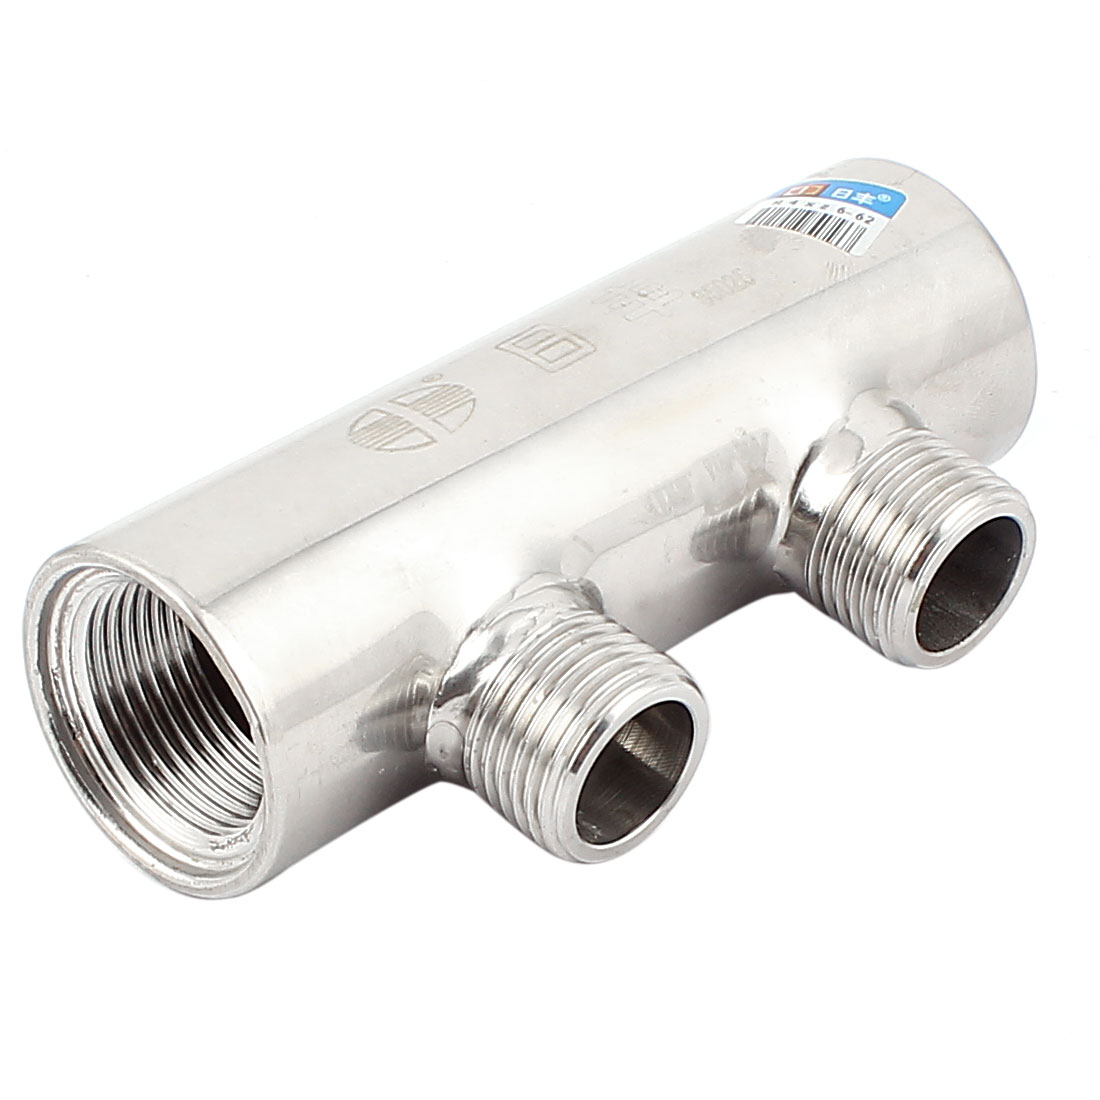 3/4BSP Inlet 1/2BSP Outlet 2 Way Stainless Steel Water Manifold Distributor